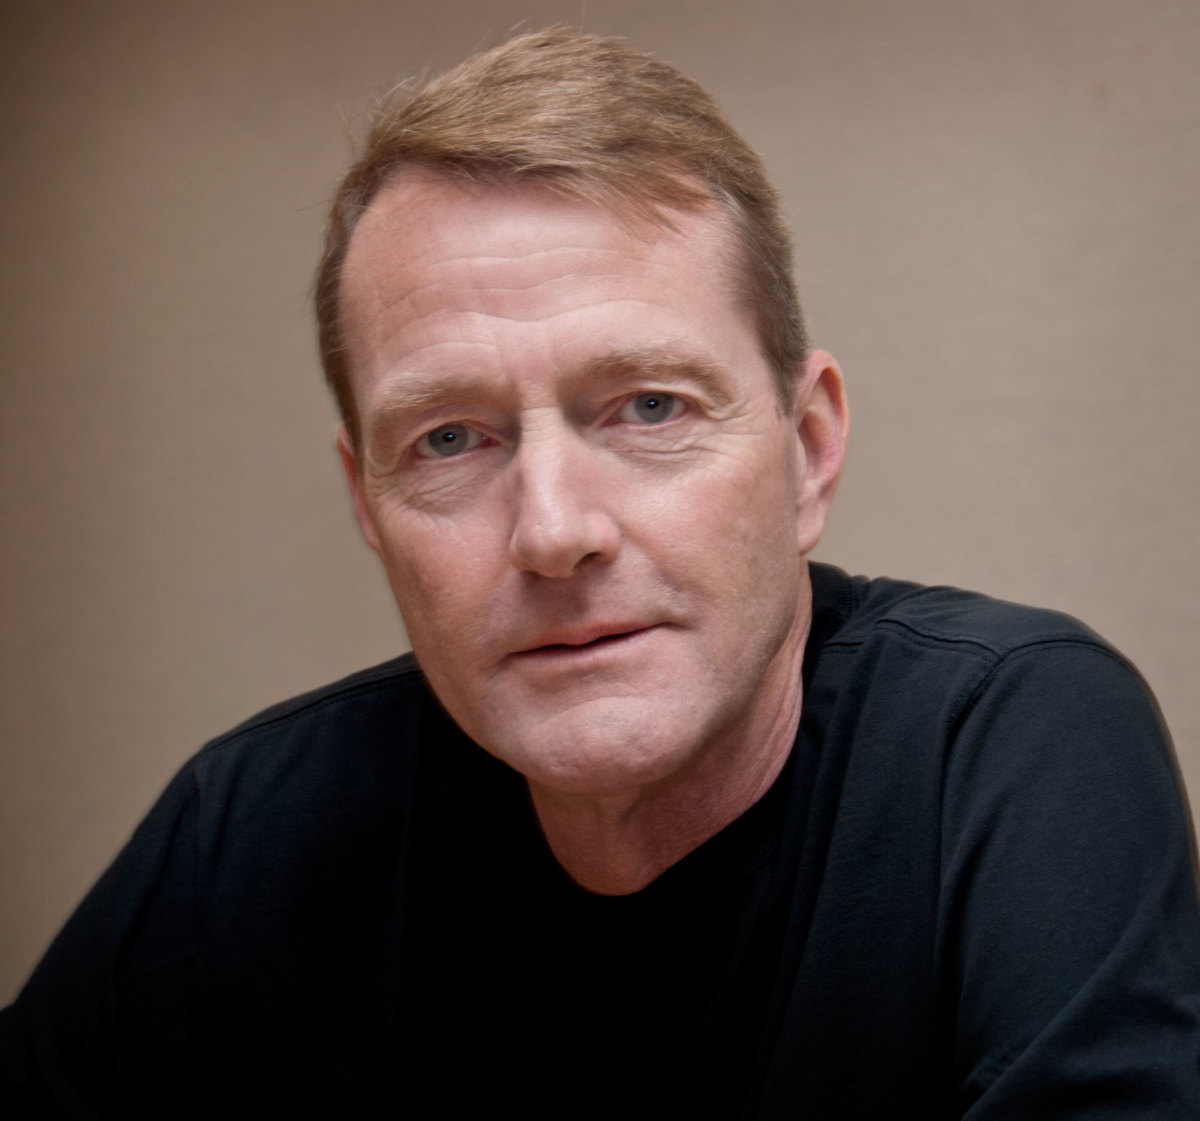 Retirement Plan: Live Like Jack Reacher in Lee Child's Books